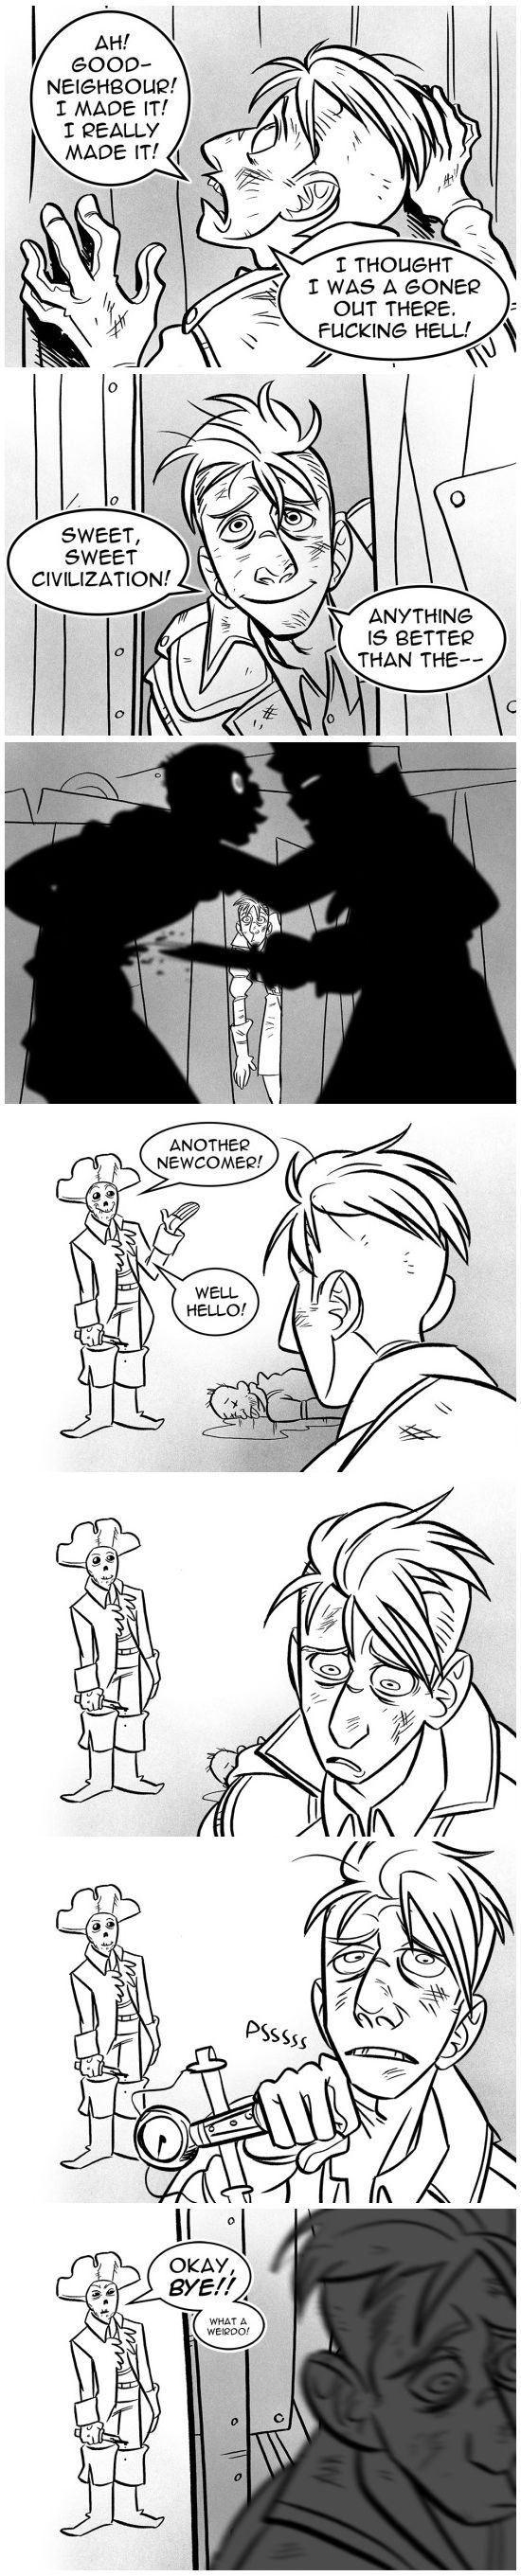 Fallout 4 | Buttons meets Hancock. That was actually the moment I fell in love with him.